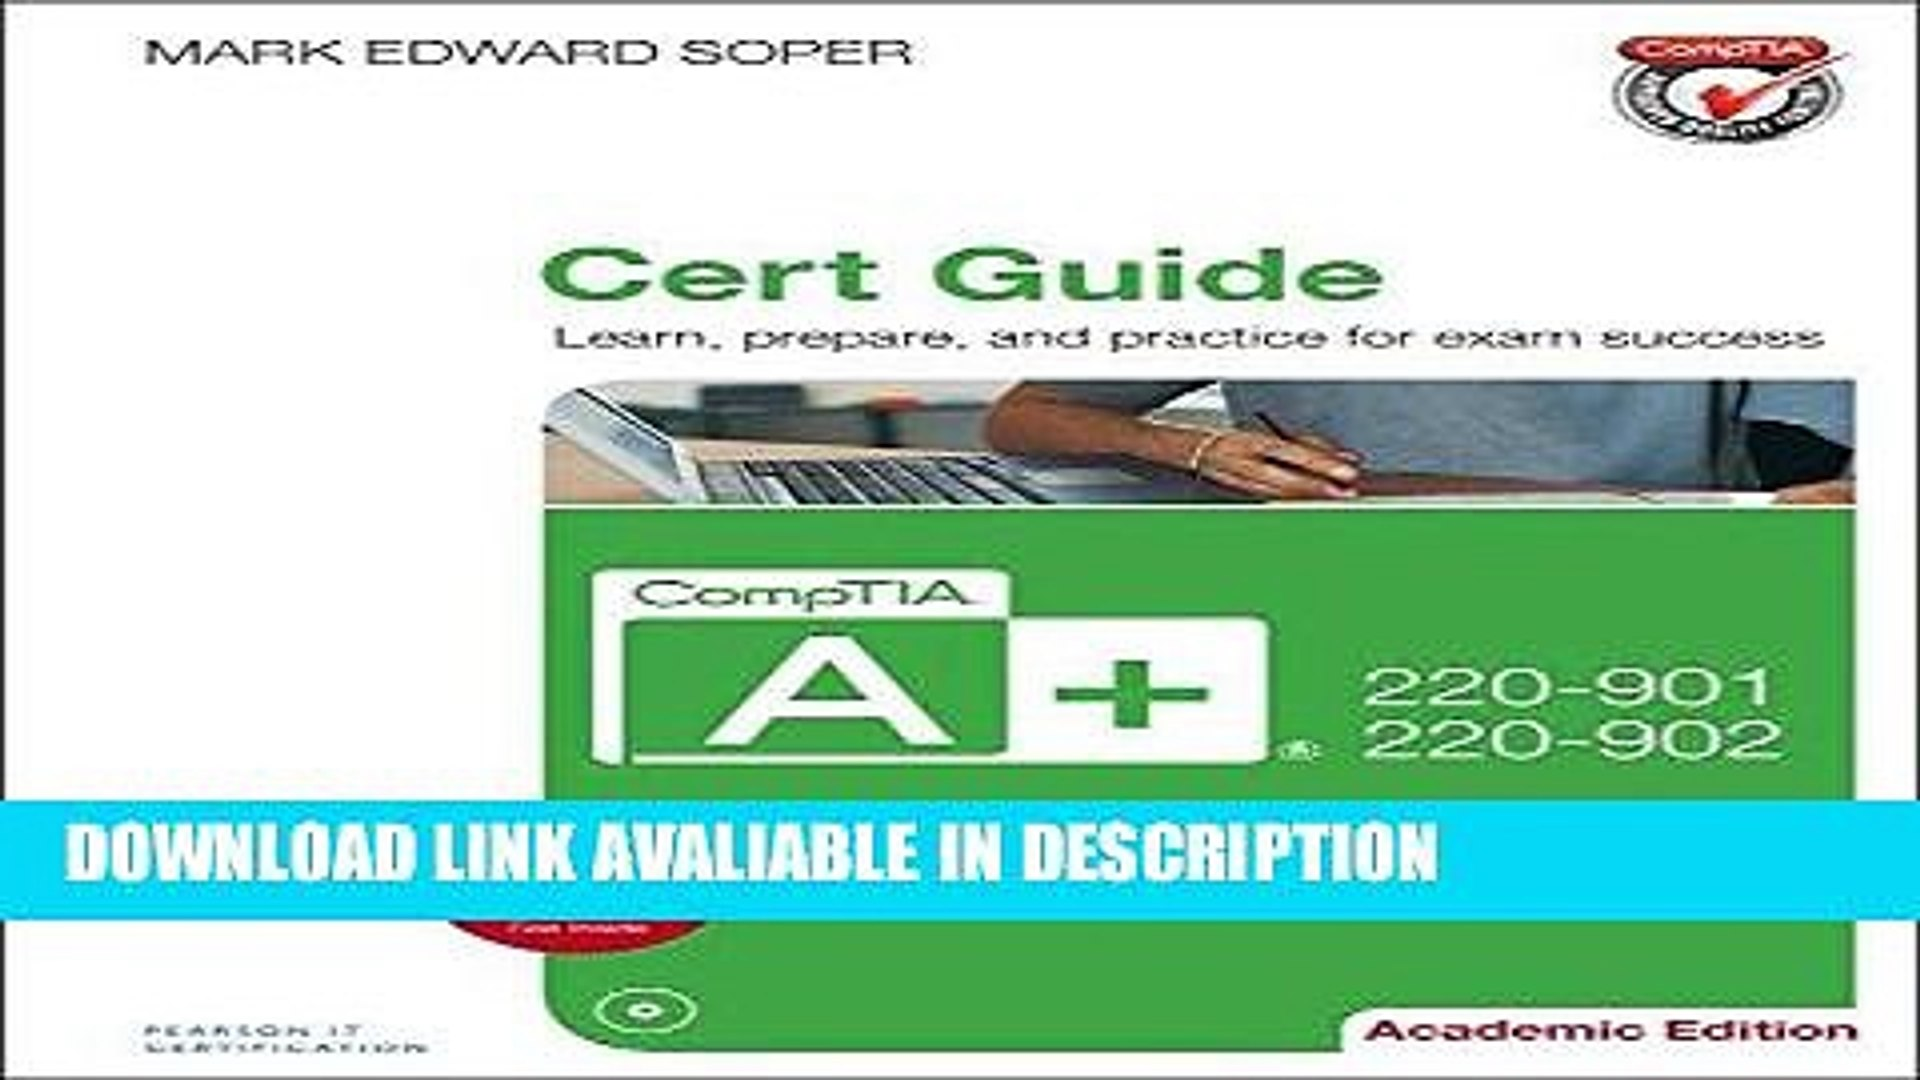 pdf online CompTIA A+ 220-901 and 220-902 Cert Guide, Academic Edition Free Audiobook